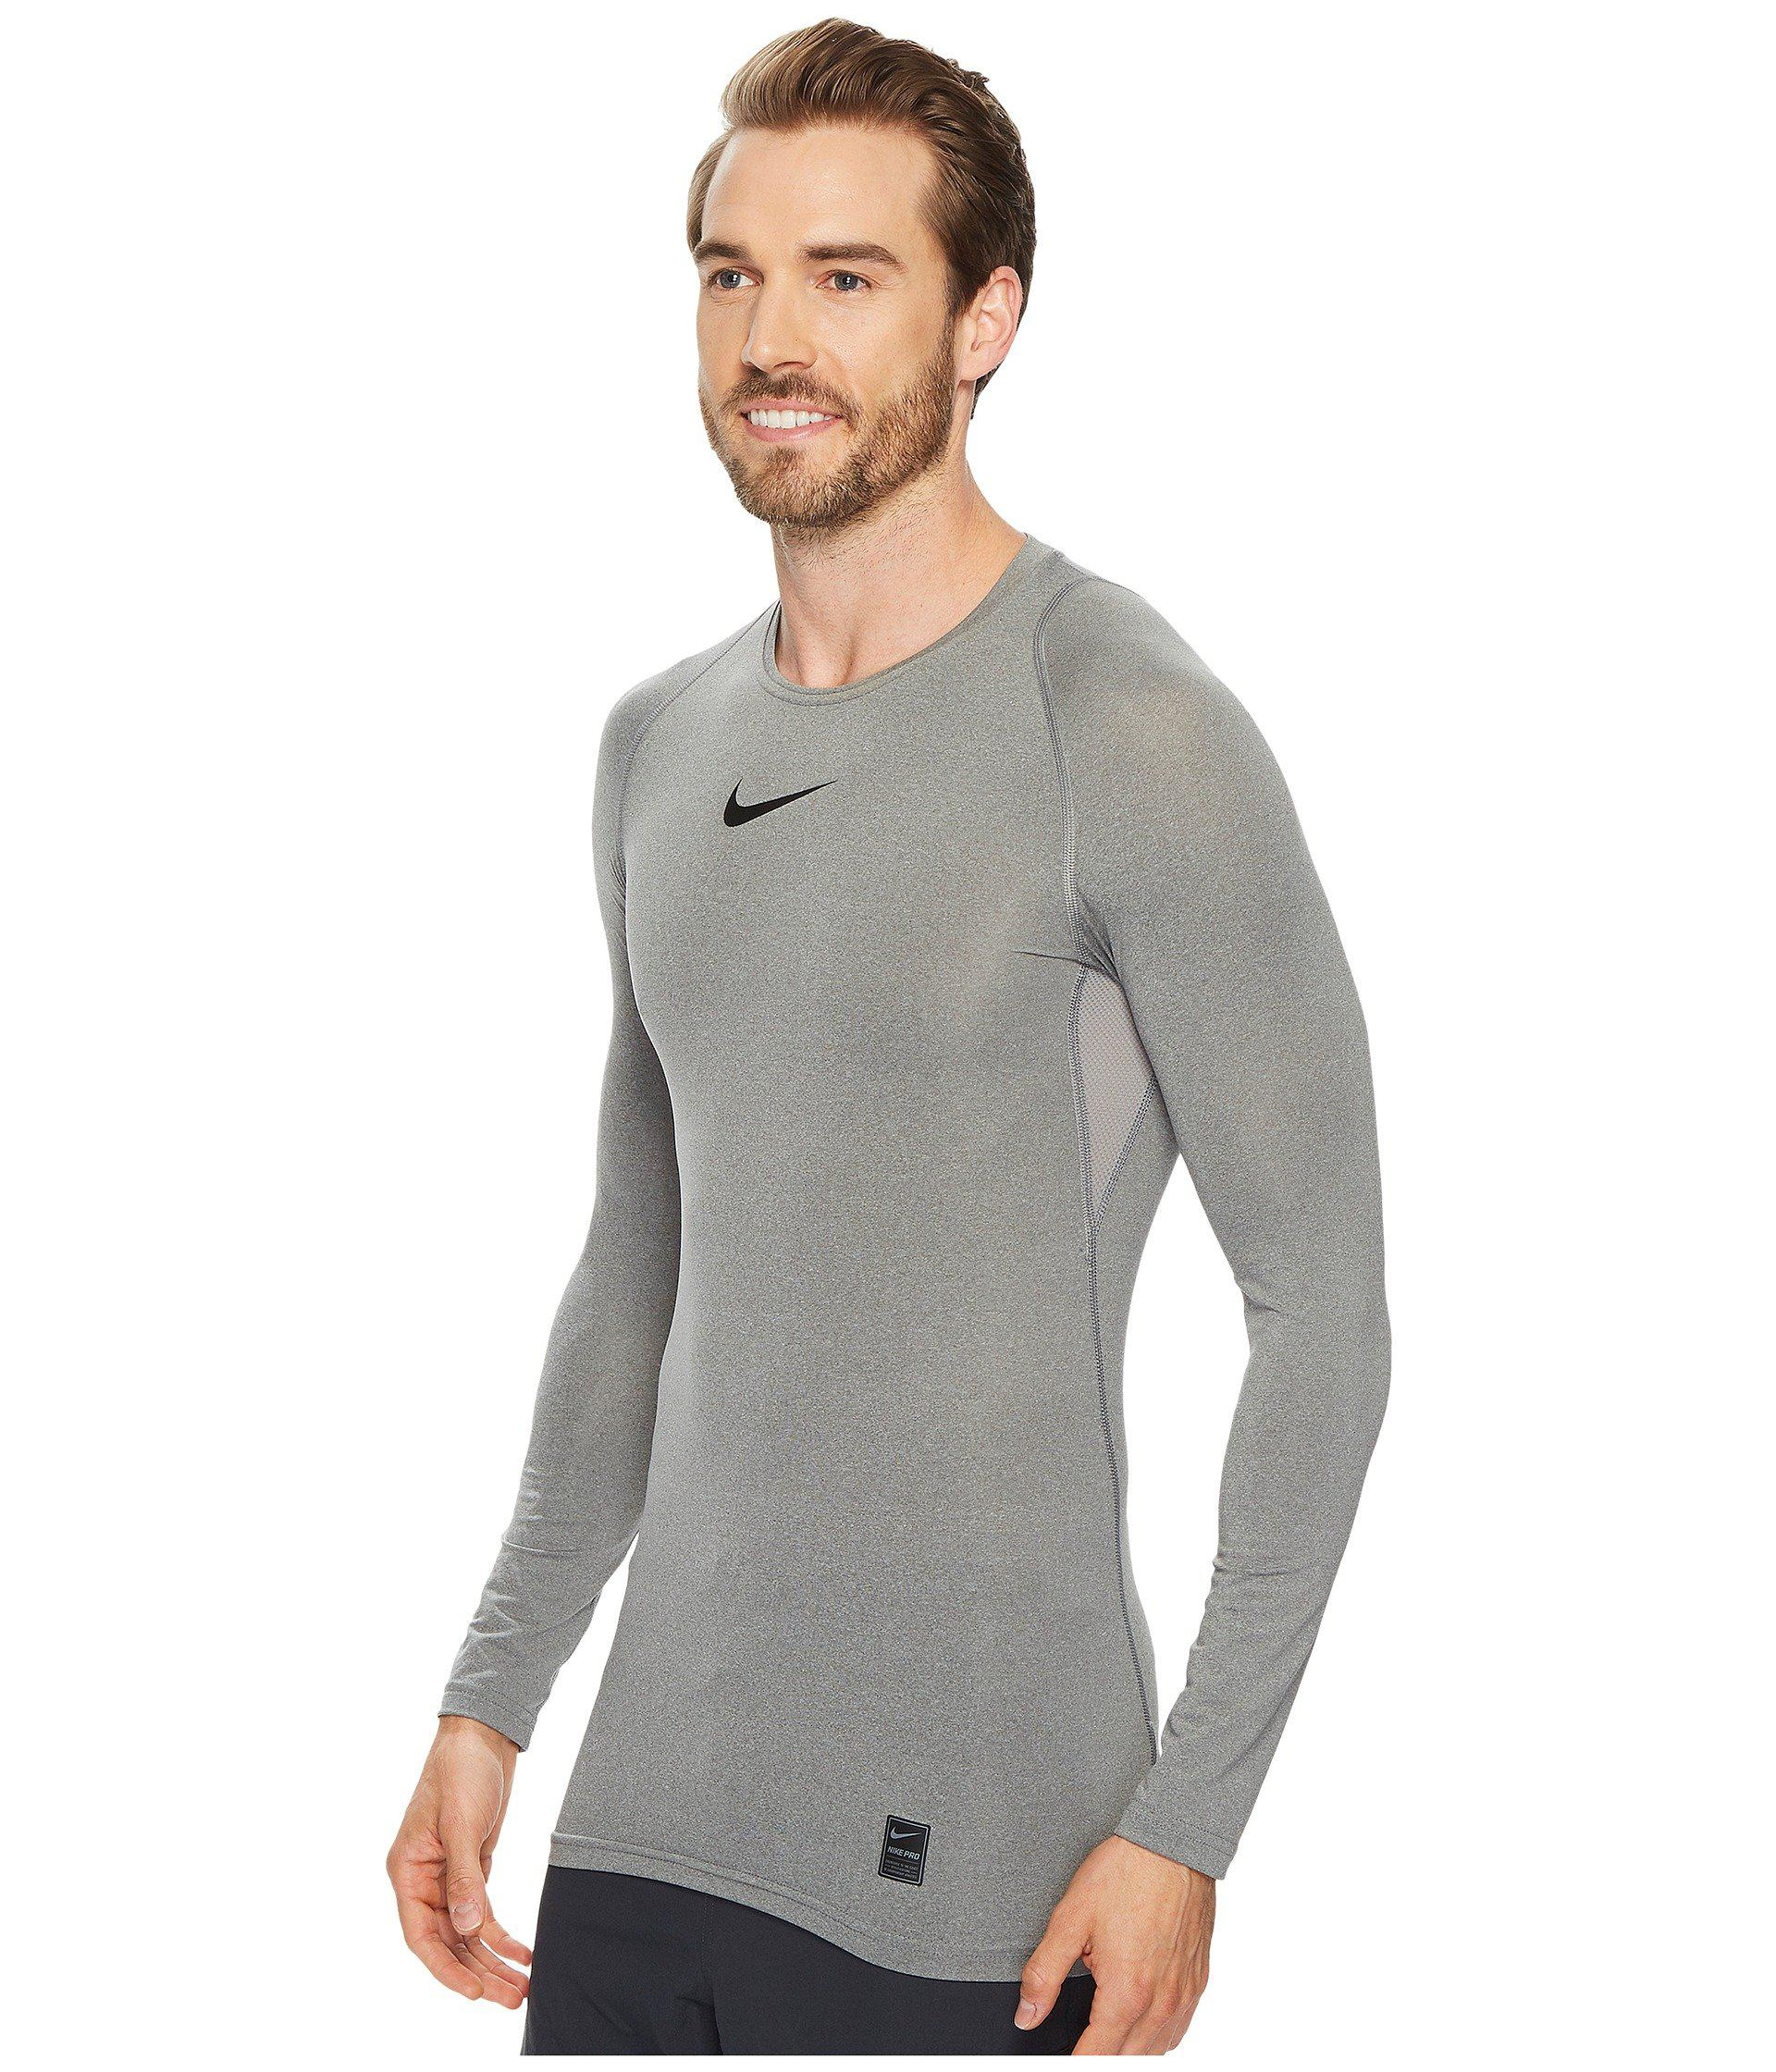 9d7a3ff3121b Lyst - Nike Pro Compression Long Sleeve Training Top in Gray for Men - Save  19%